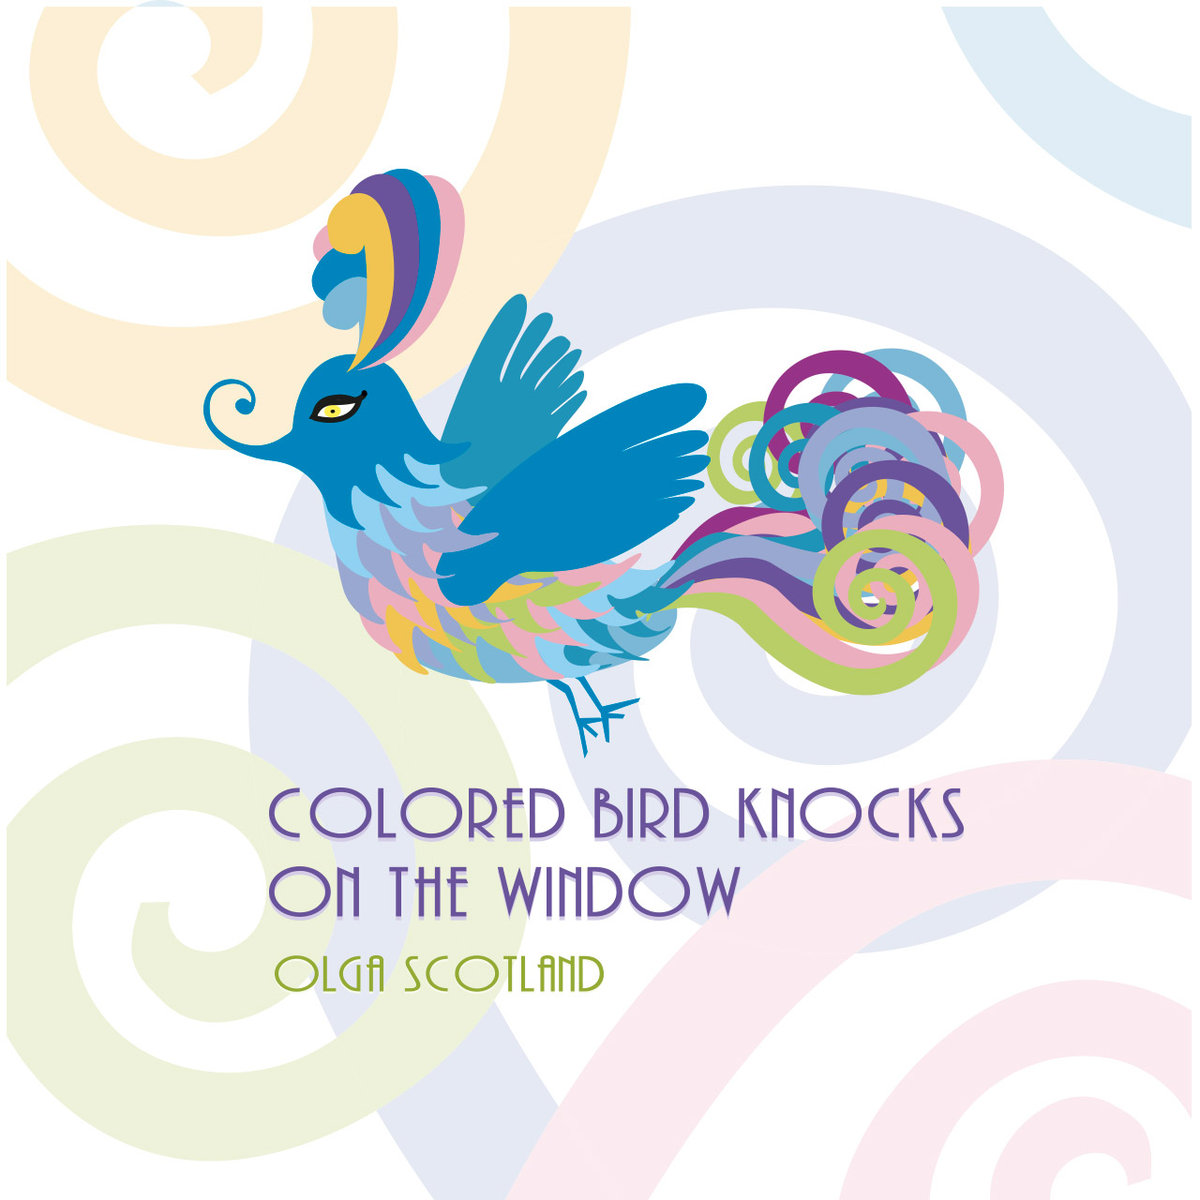 Olga Scotland - Dancing Cow @ 'Colored Bird Knocks On The Window' album (soundtrack, ambient)